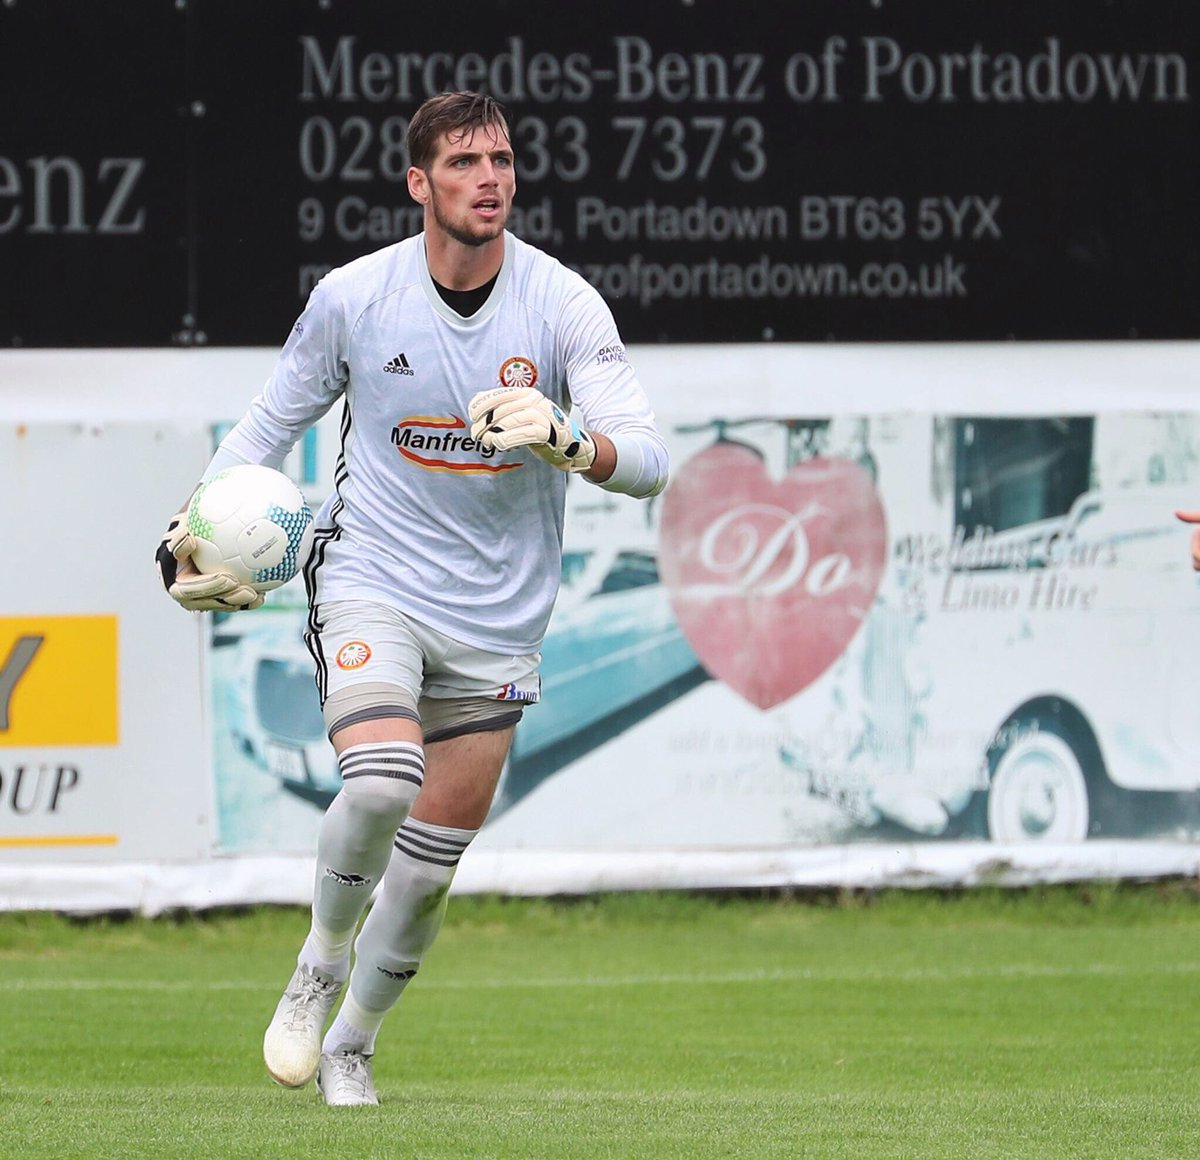 Ports in disappointing defeat to 'Mallards